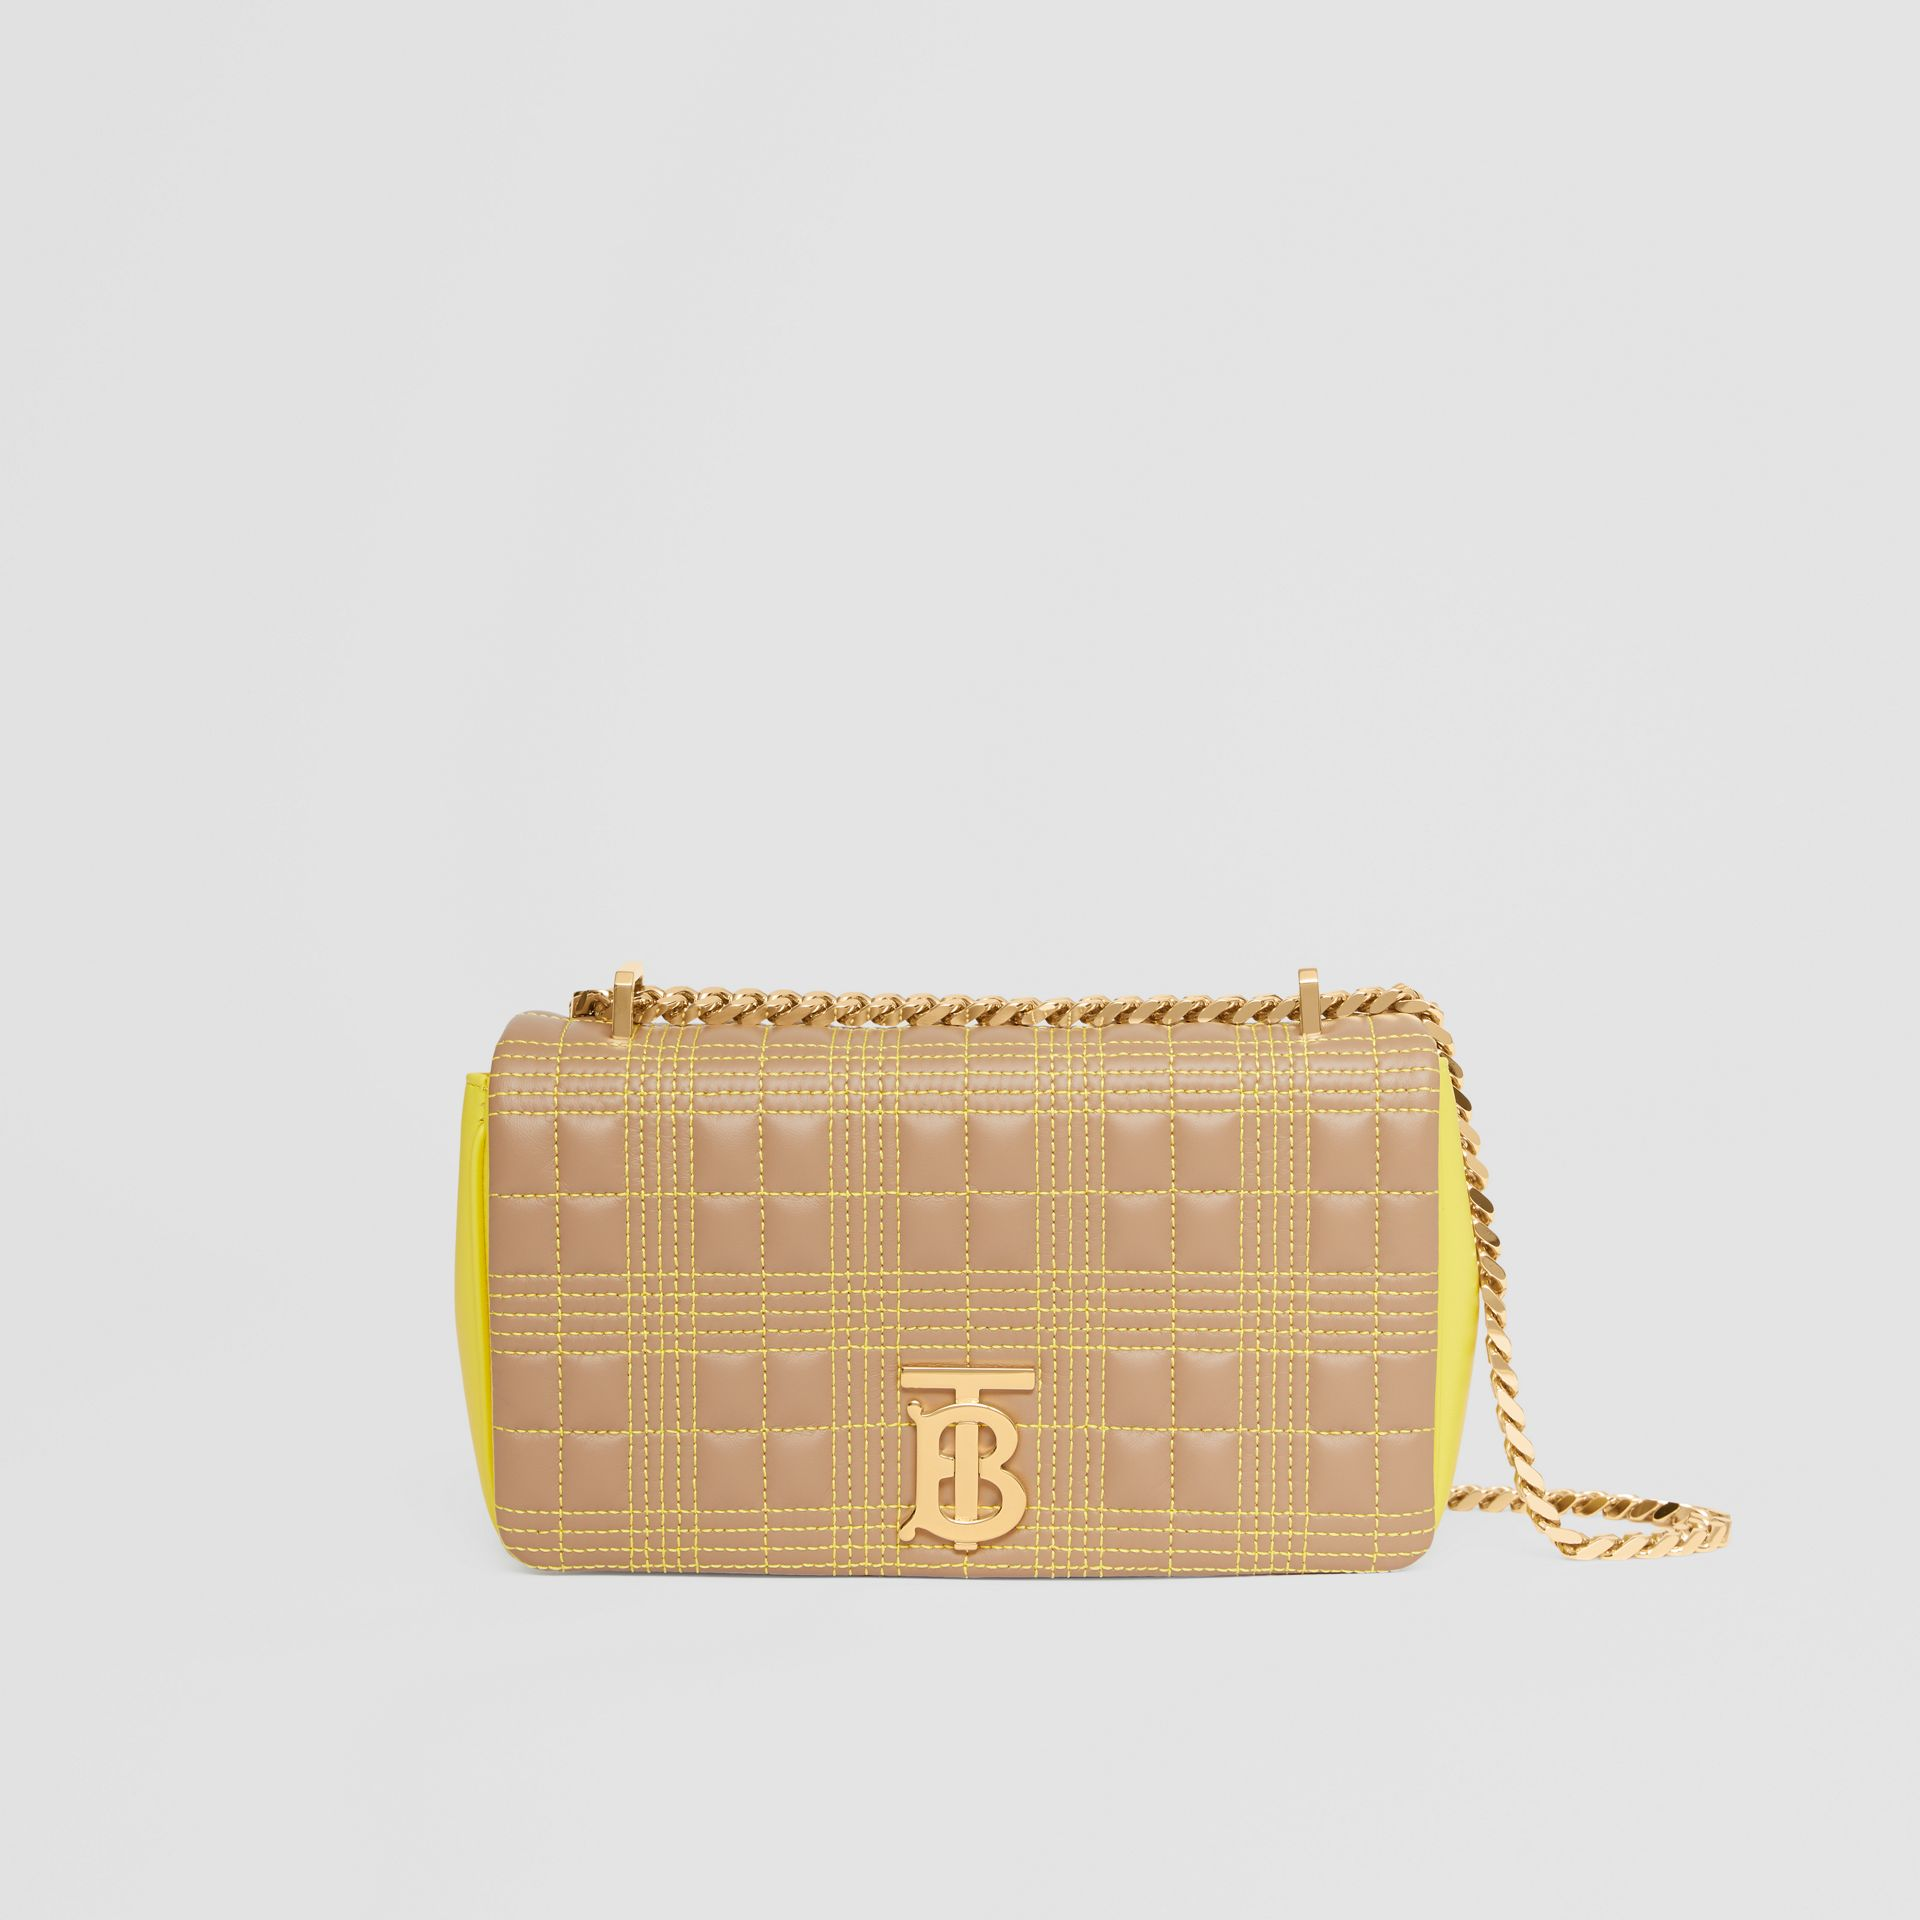 Small Quilted Tri-tone Lambskin Lola Bag in Camel/yellow - Women | Burberry - gallery image 0